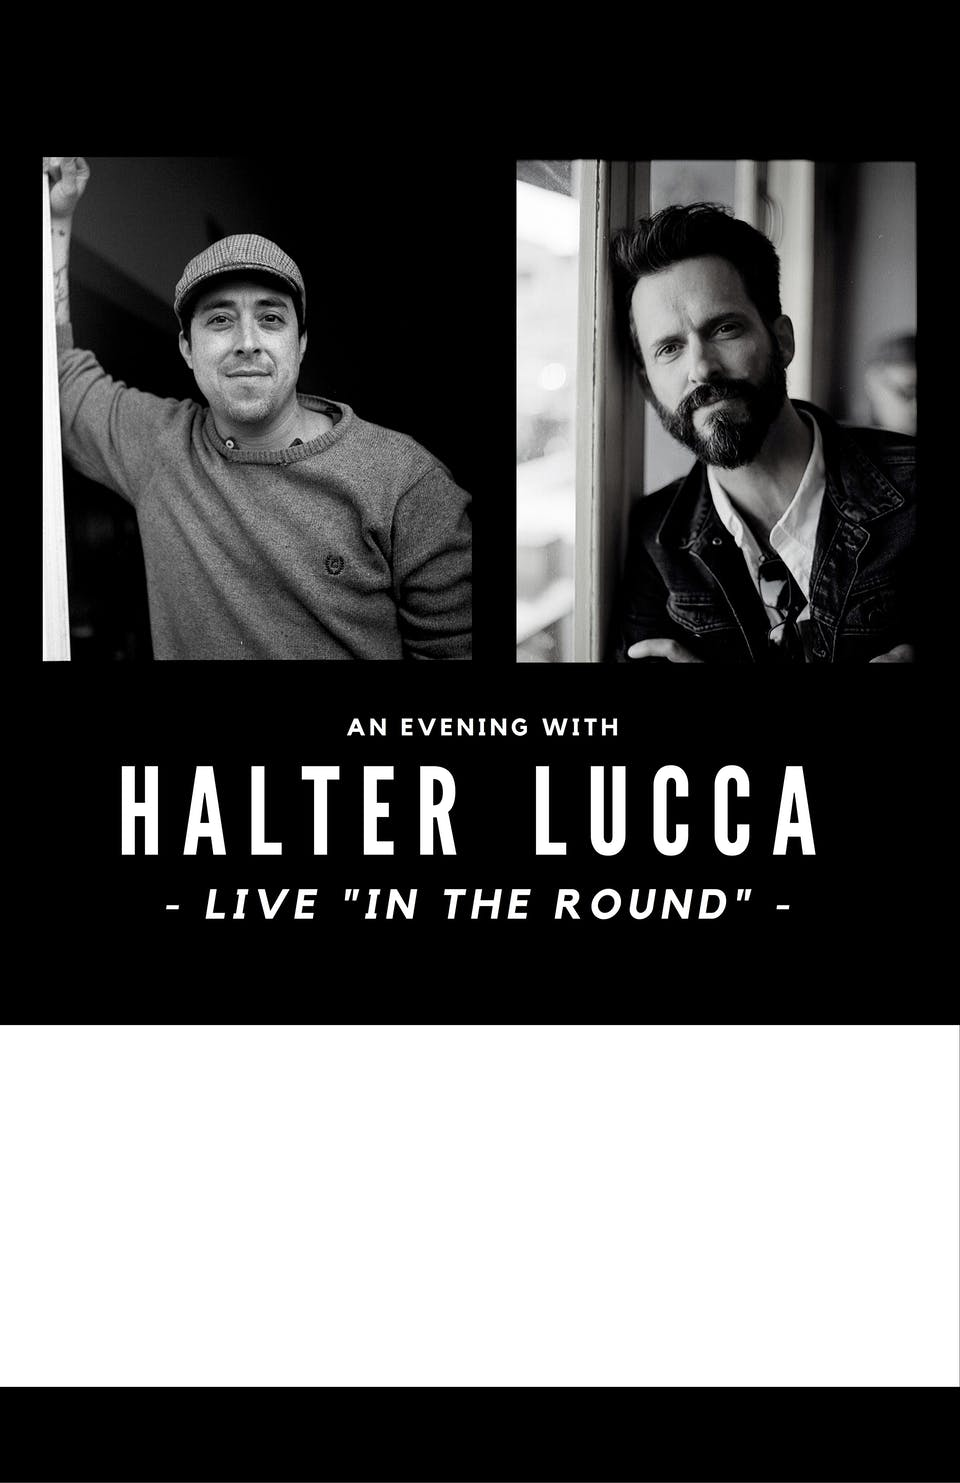 An Evening with Tony Lucca + Ernie Halter